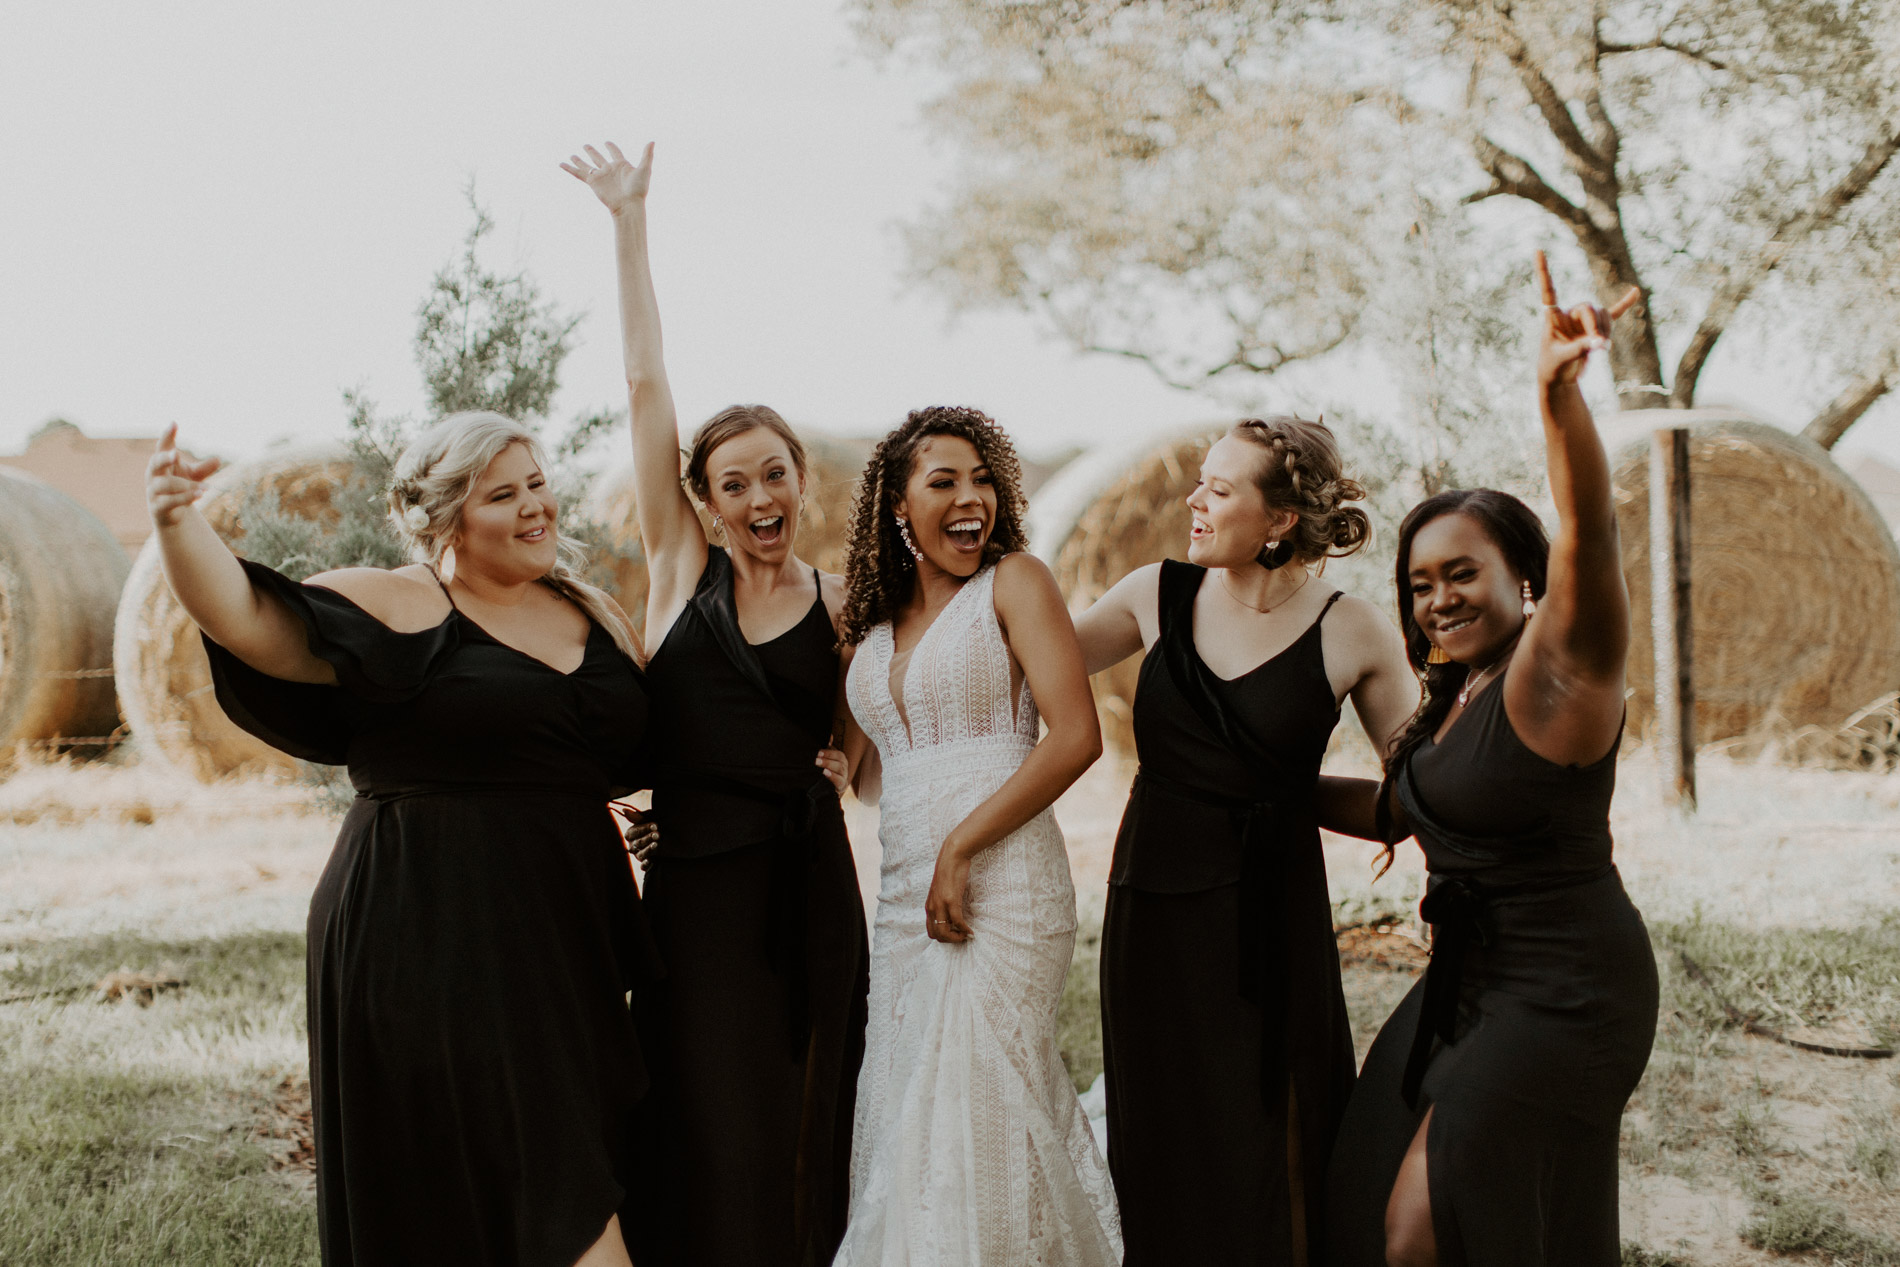 Bride with her bridesmaids on boho wedding day